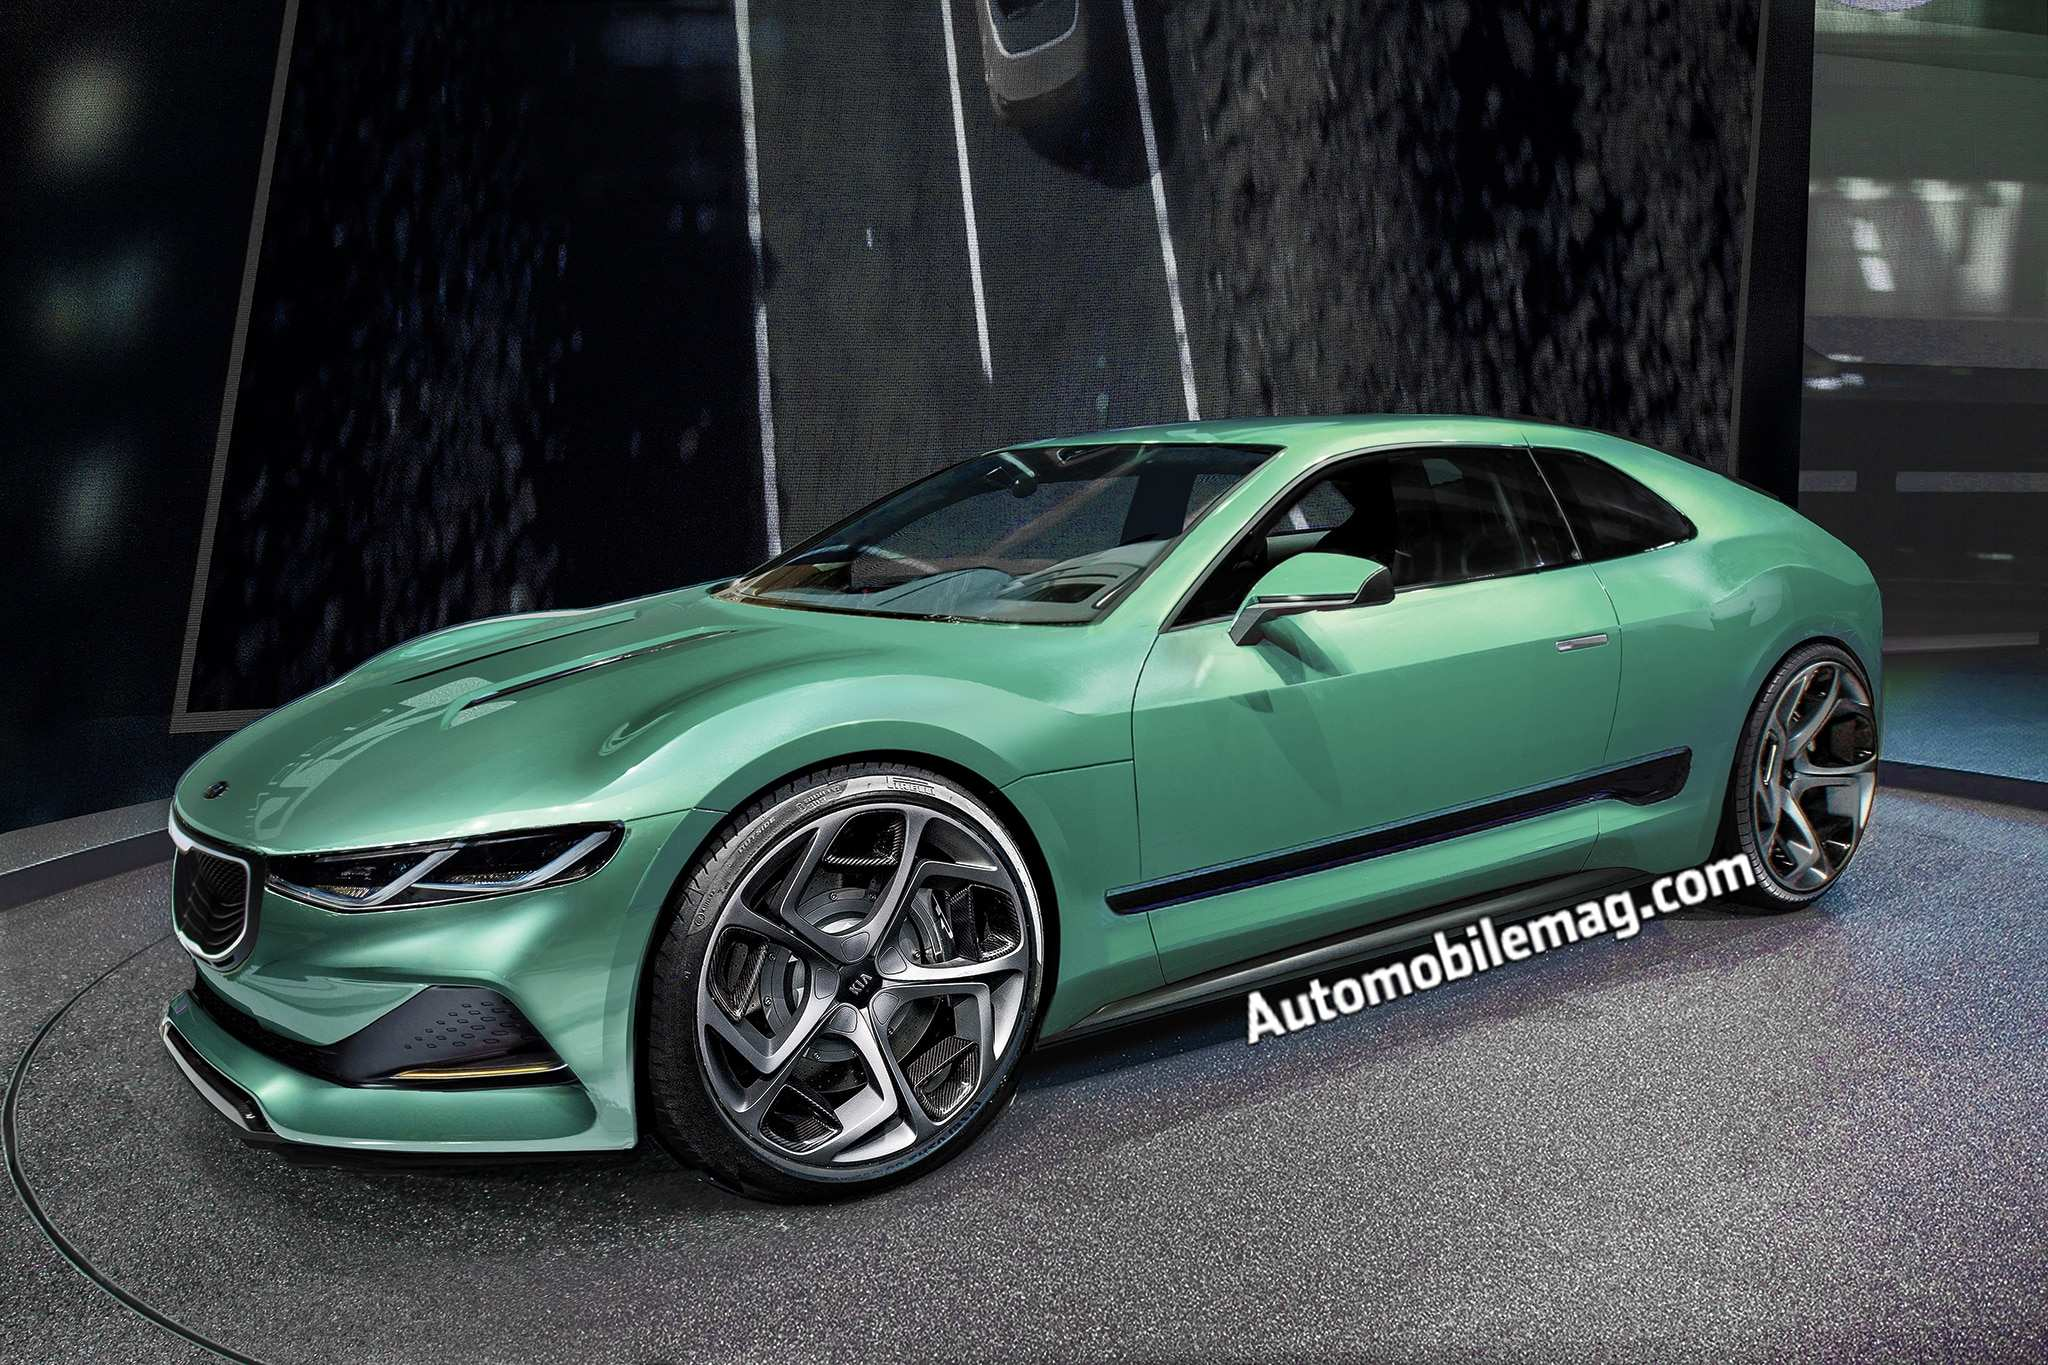 70 Best Ford Concept Cars 2020 Pricing